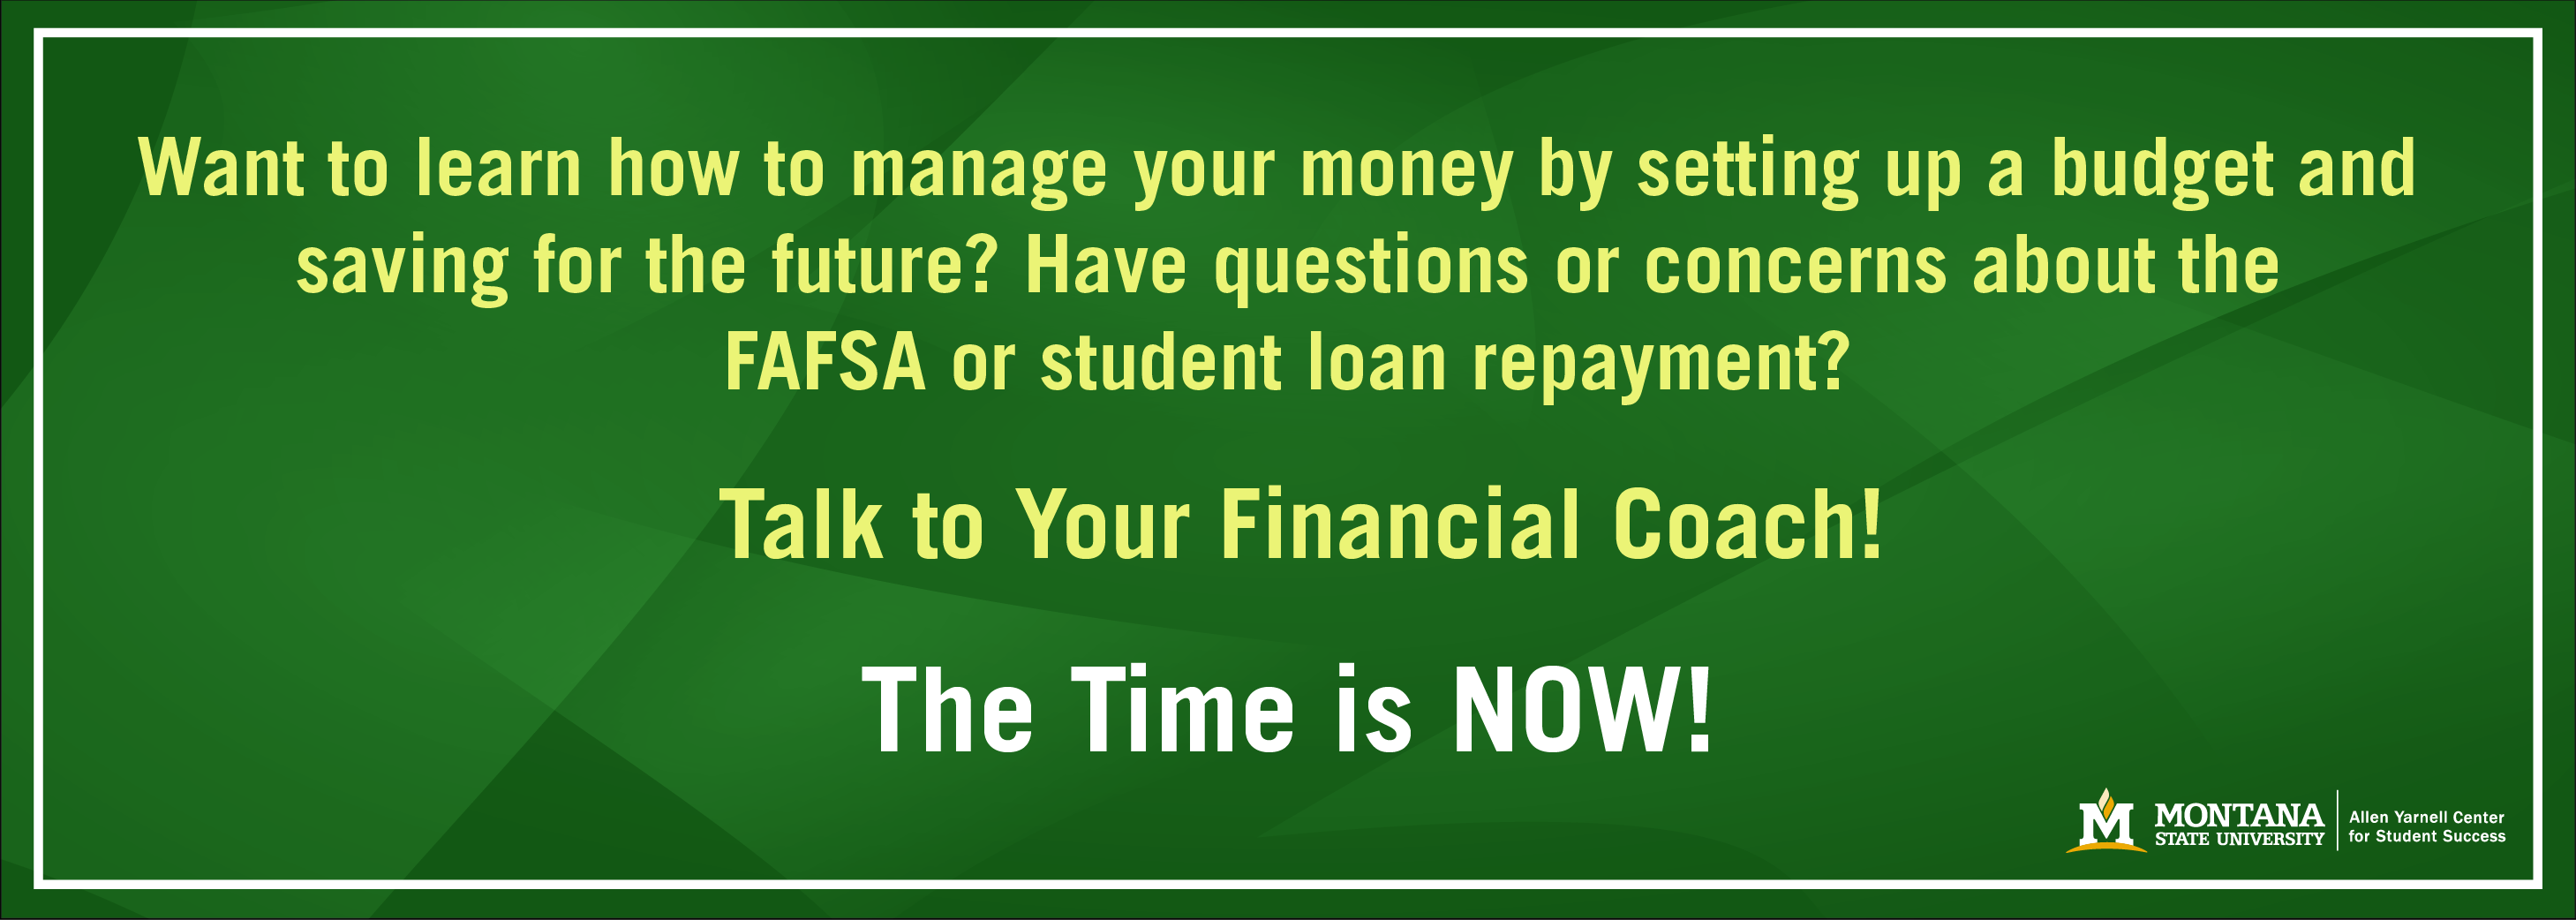 Want to learn how to manage your money by setting up a budget and saving for the future? Have questions or concerns about the FAFSA or student loan repayment? Talk to your Financial Coach! The time is NOW!